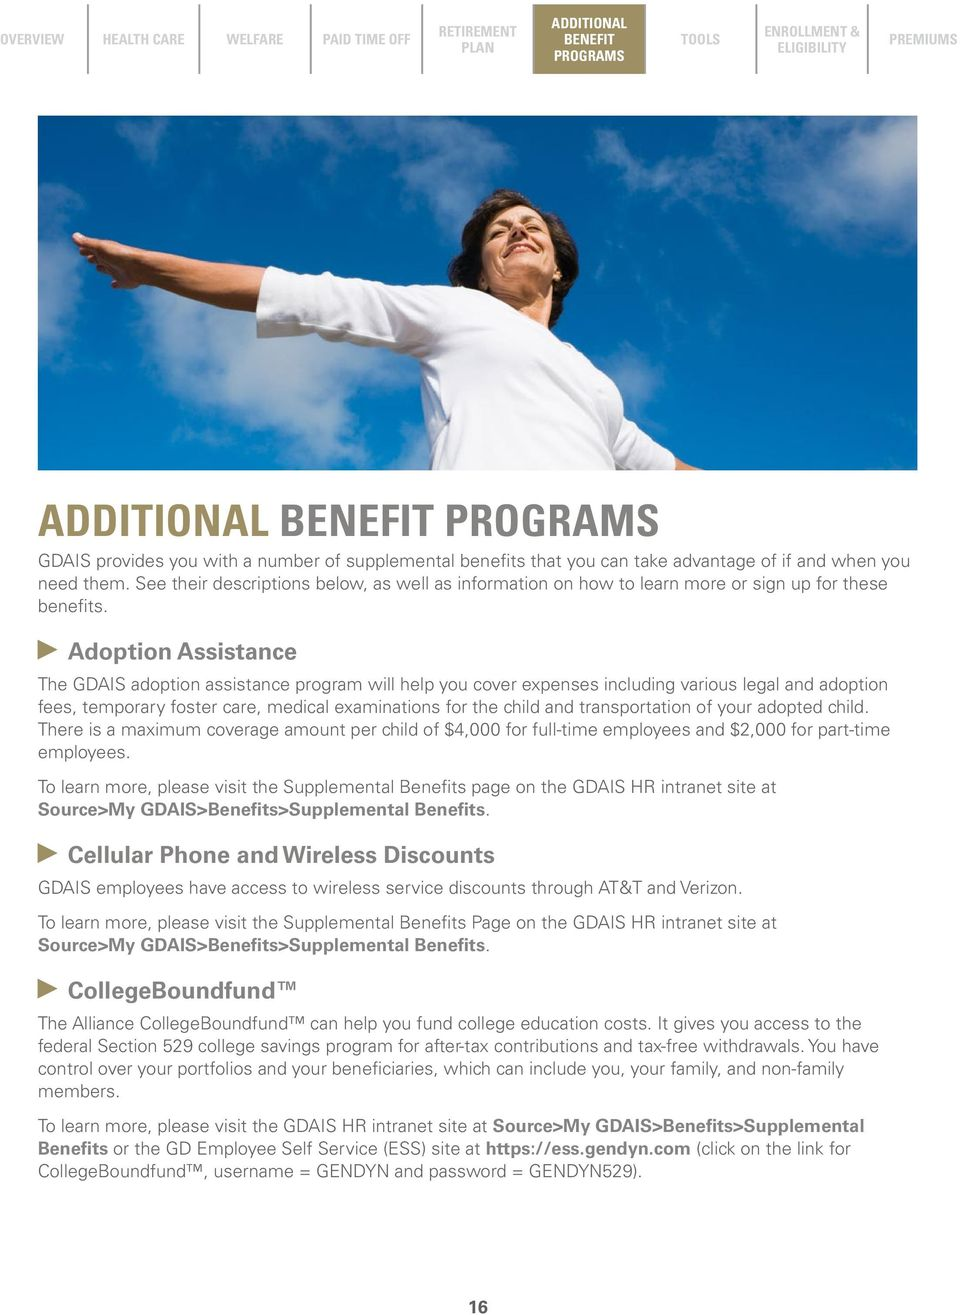 NEW HIRE BENEFITS ENROLLMENT - PDF